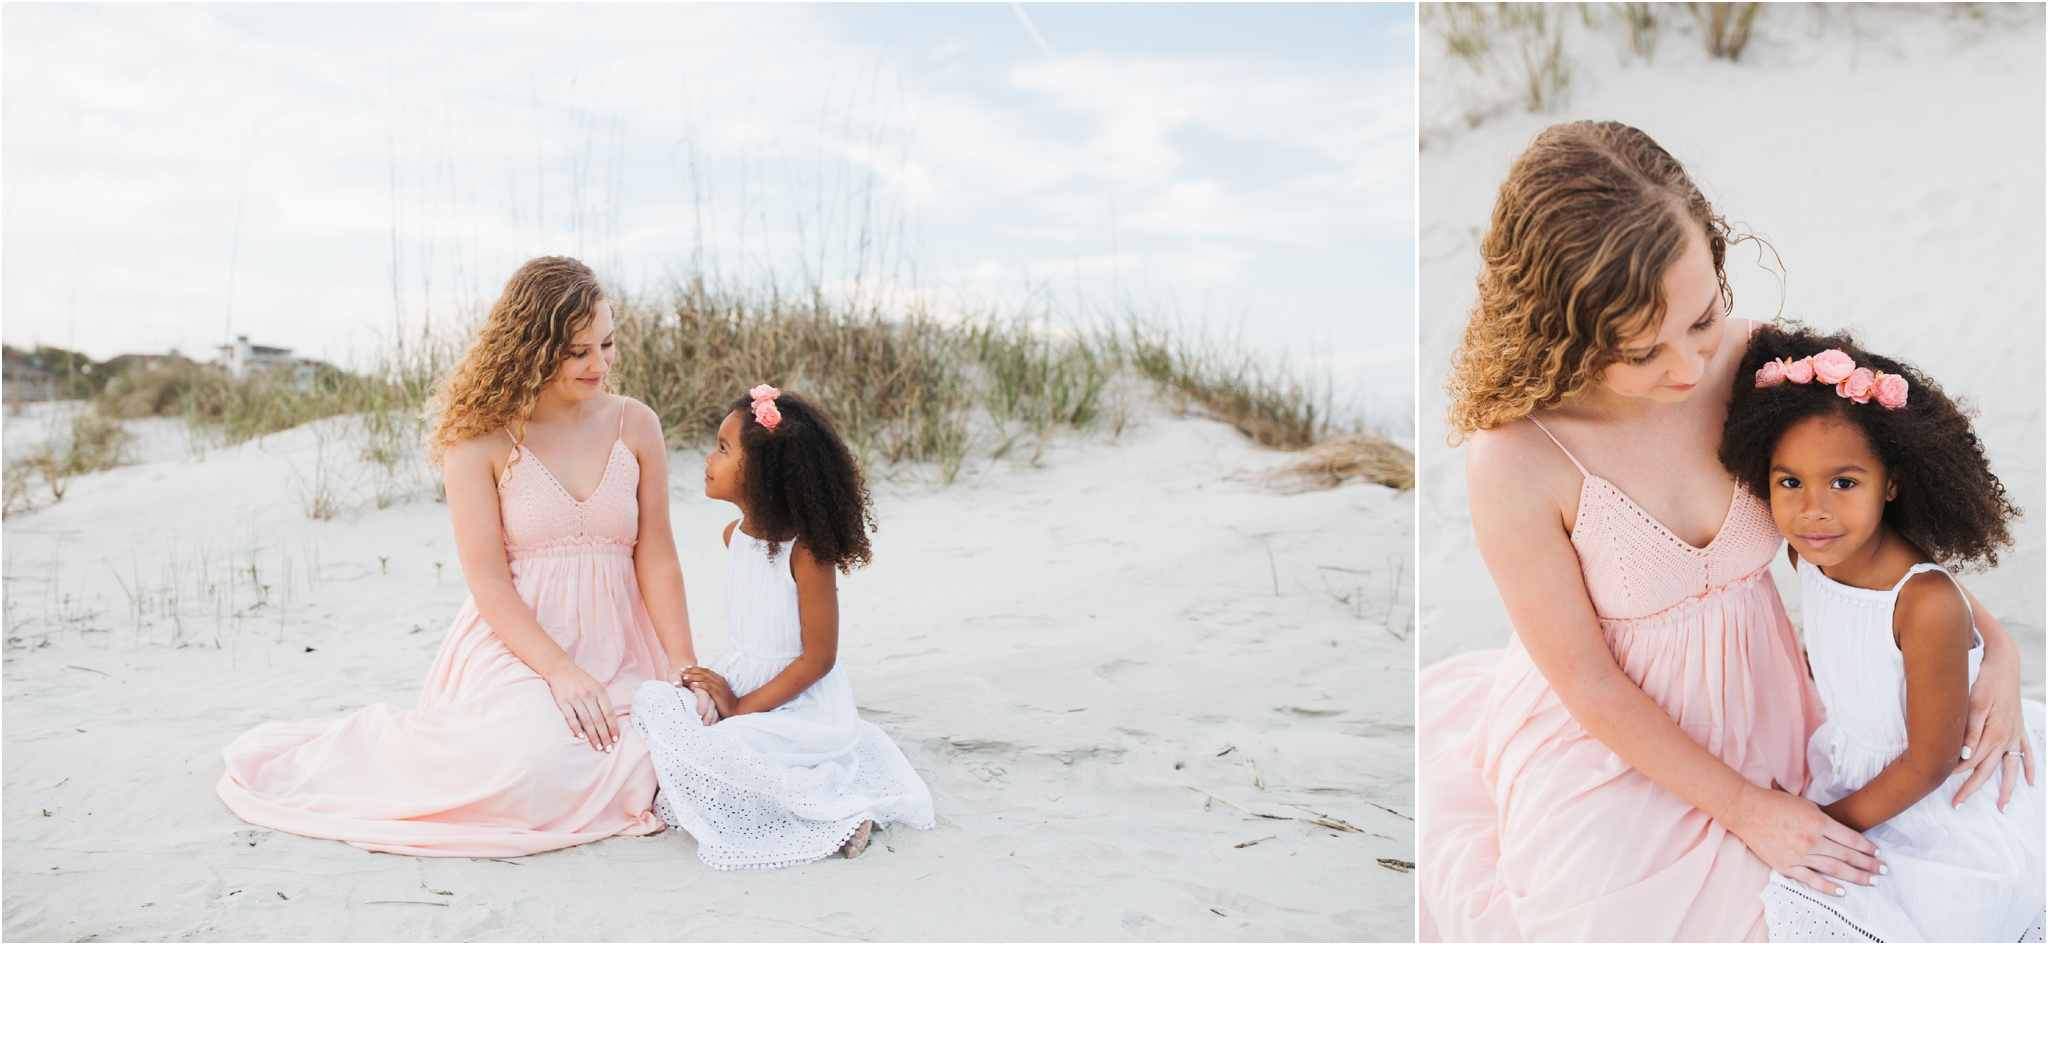 Rainey_Gregg_Photography_St._Simons_Island_Georgia_California_Wedding_Portrait_Photography_1745.jpg